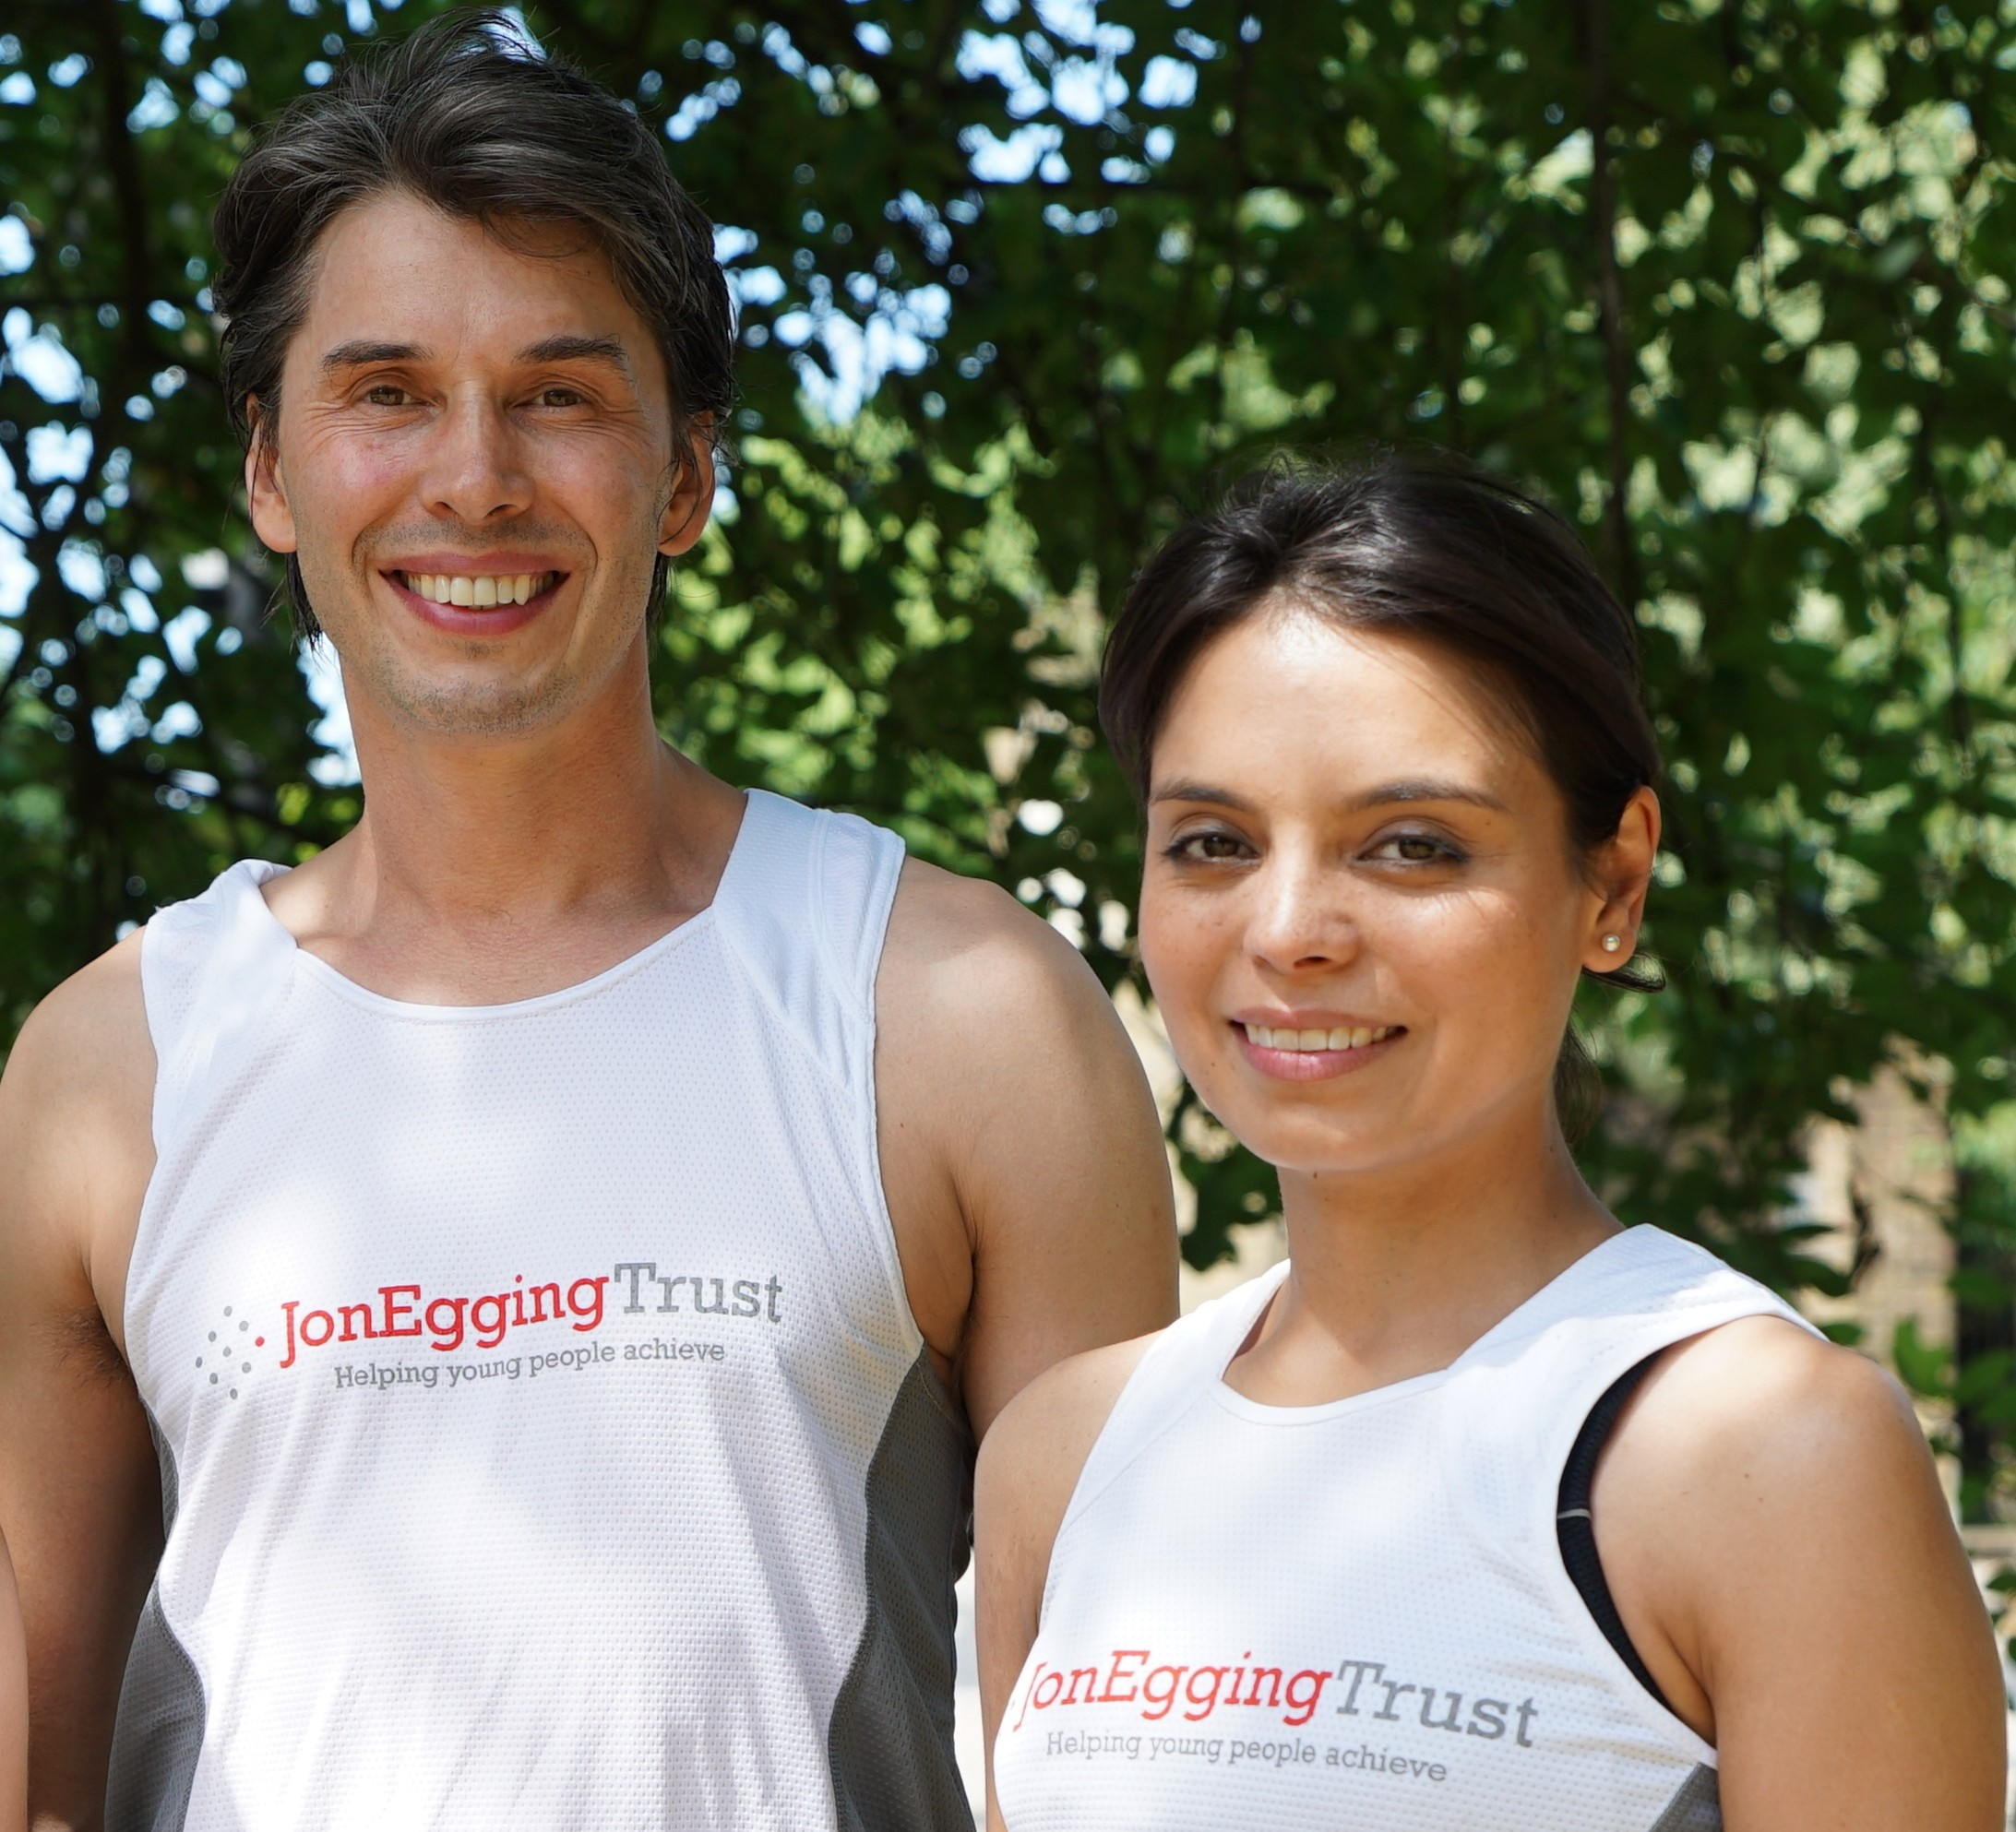 Professor Brian Cox joins the Jon Egging Trust team for the Morrisons Great North Run